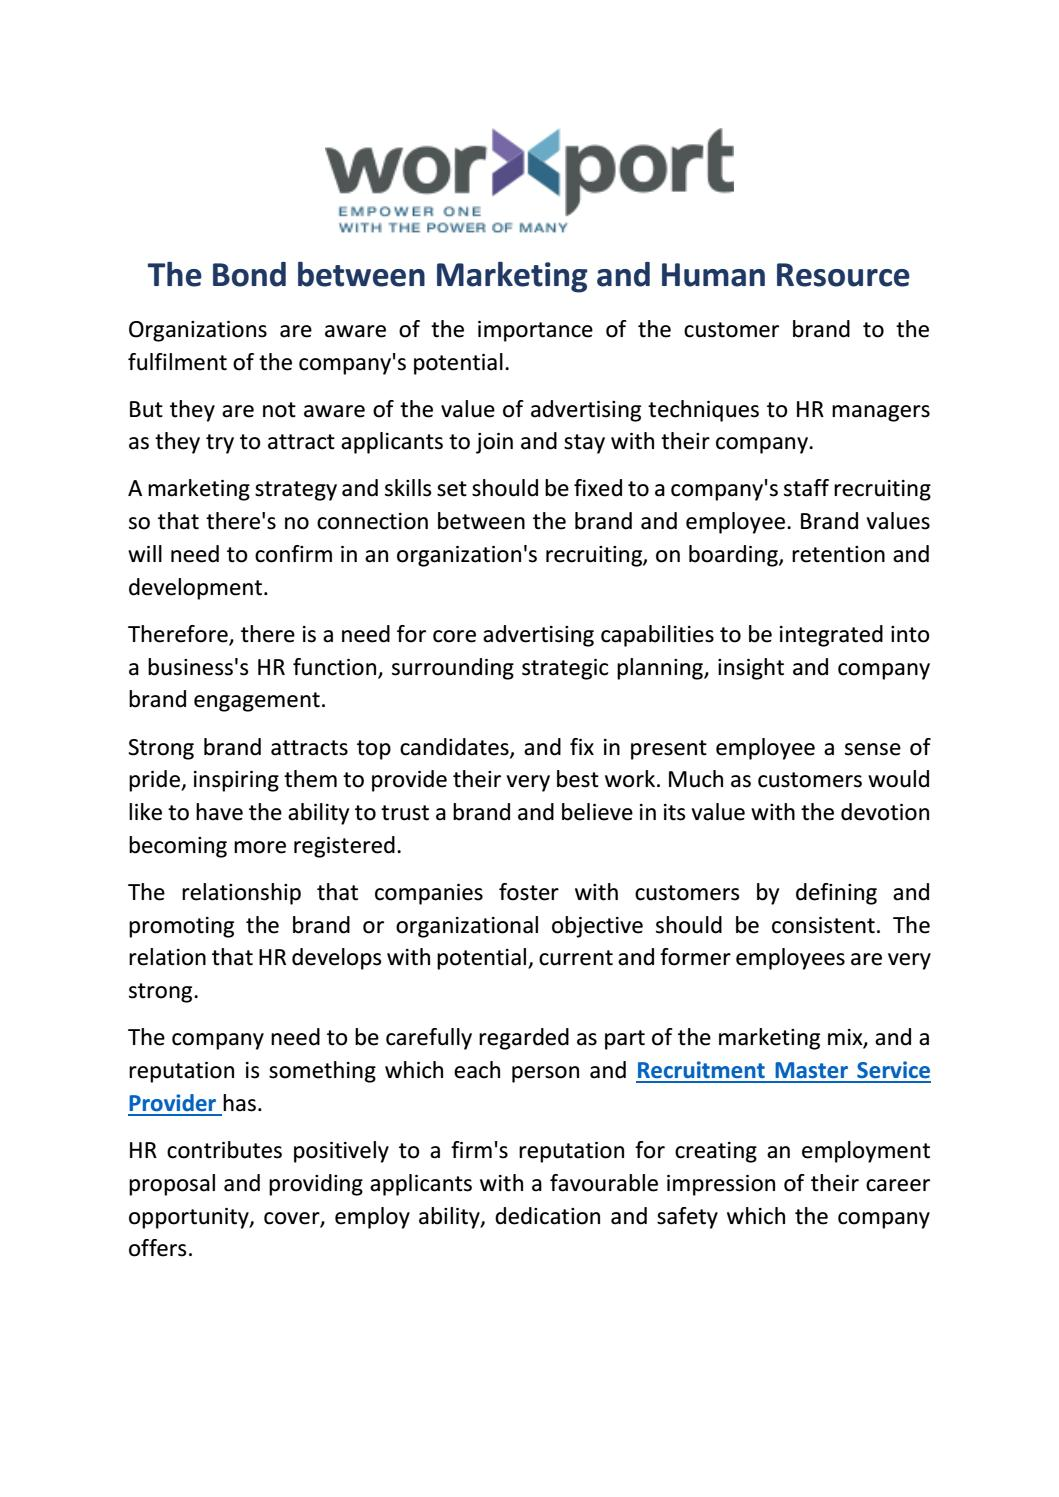 The bond between marketing and human resource by worxport